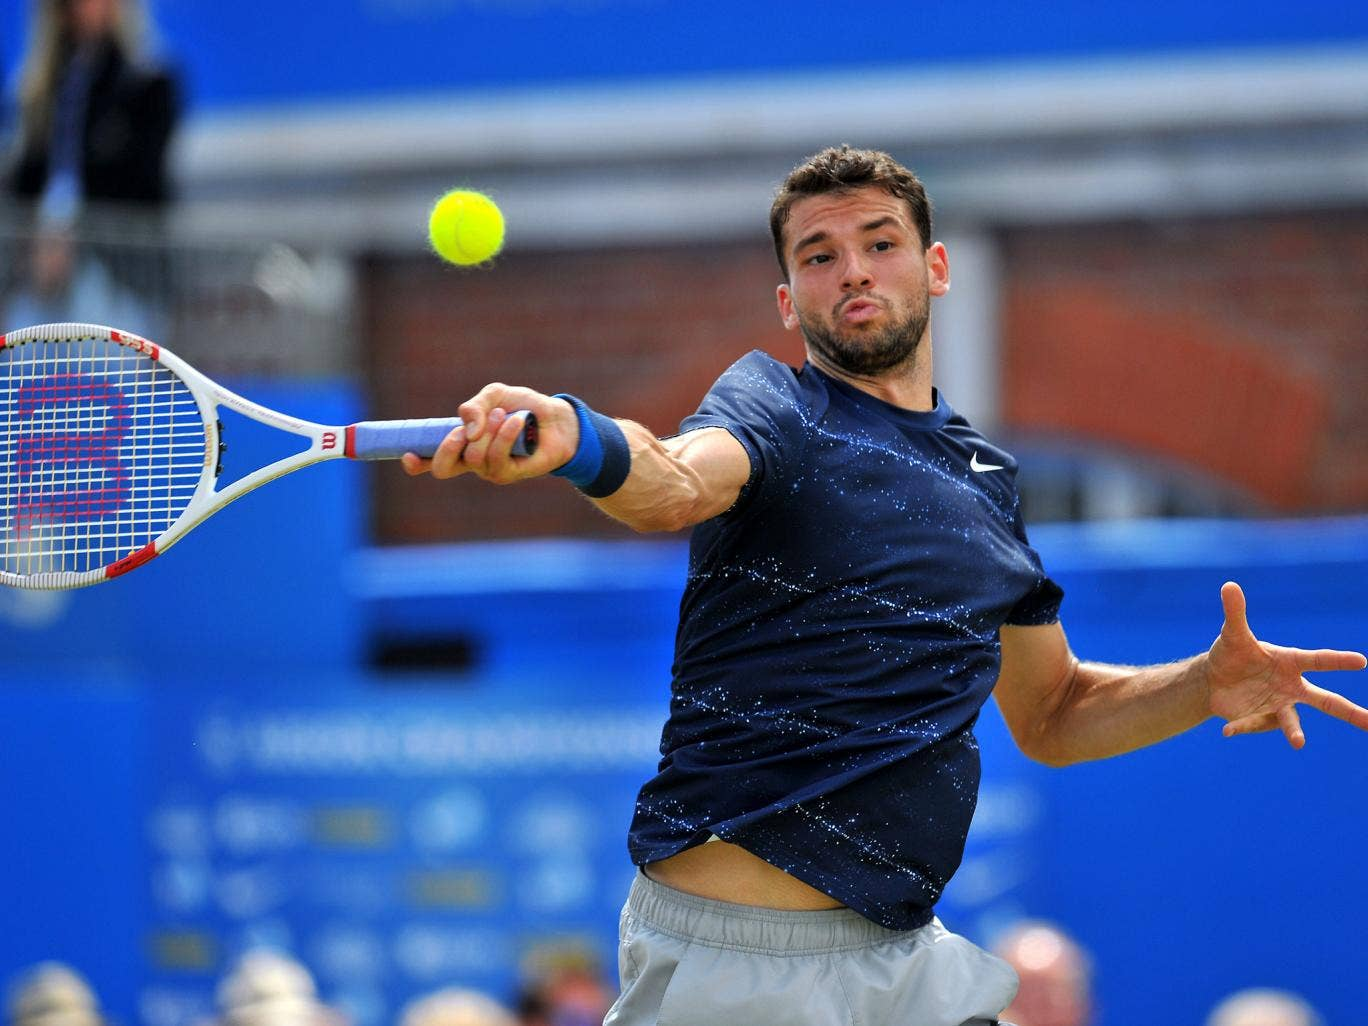 A buoyant Dimitrov on his way to a two-set victory